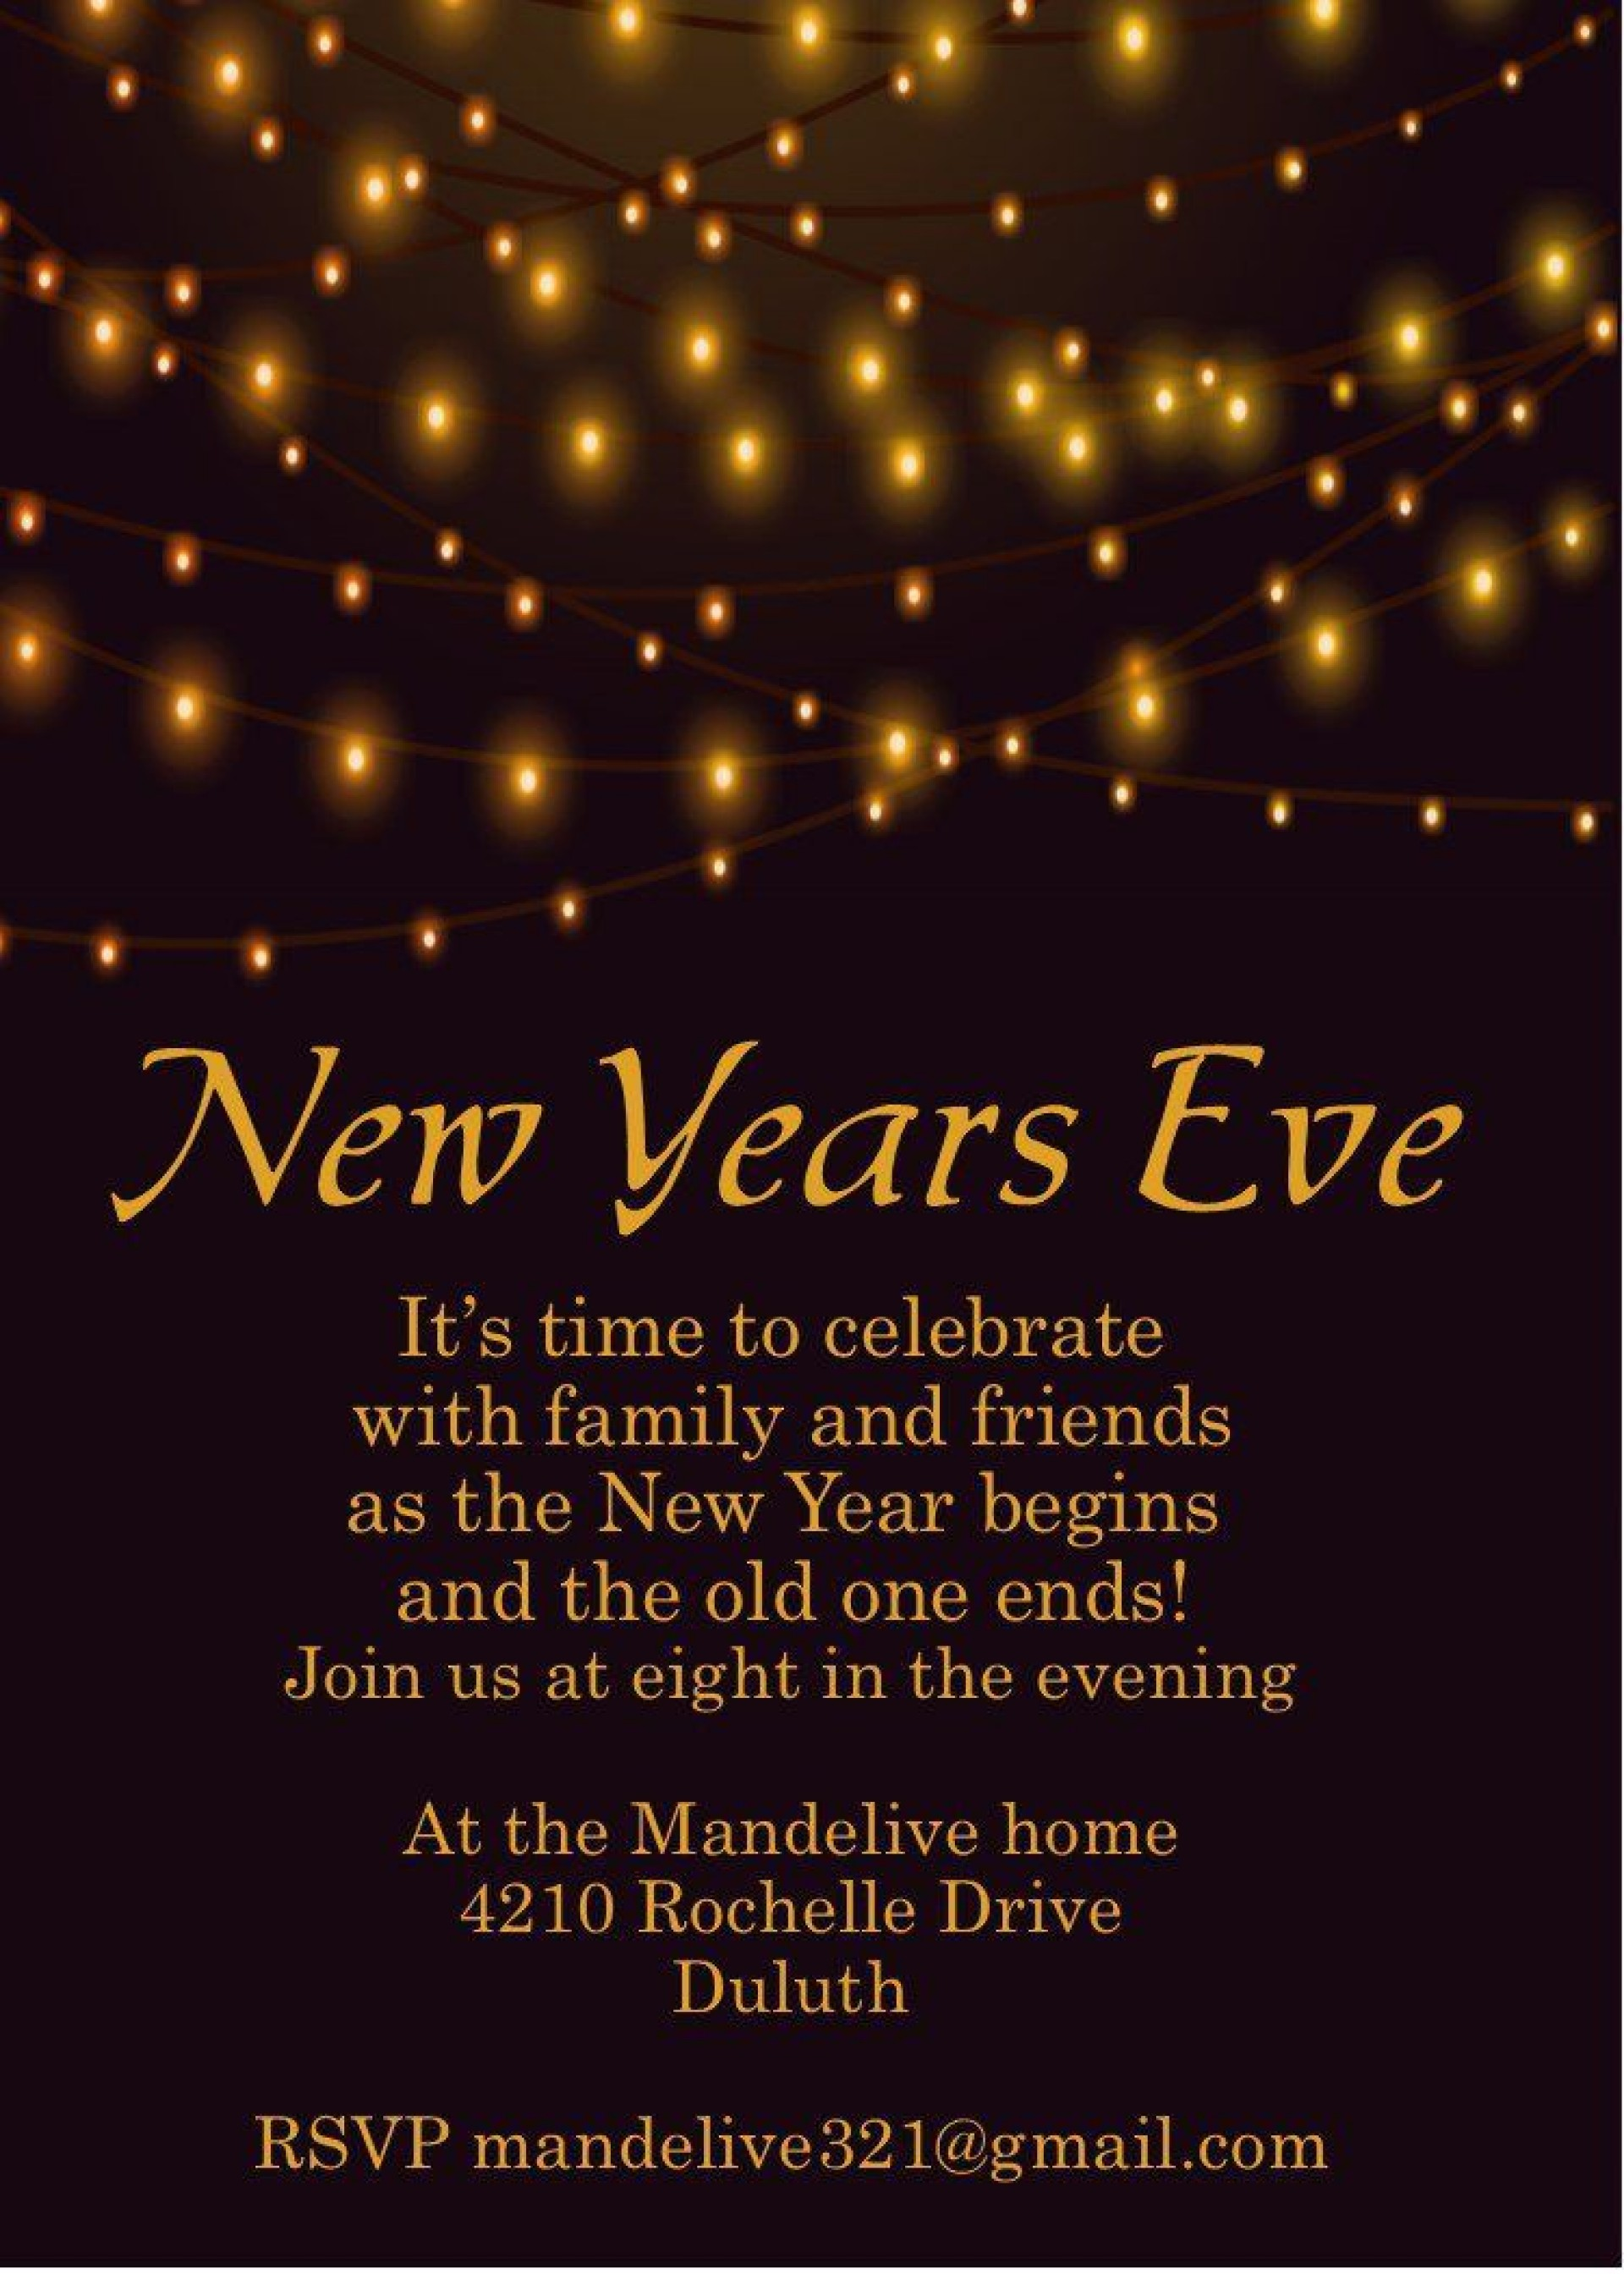 001 Frightening New Year Eve Invitation Template High Resolution  Party Free Word1920